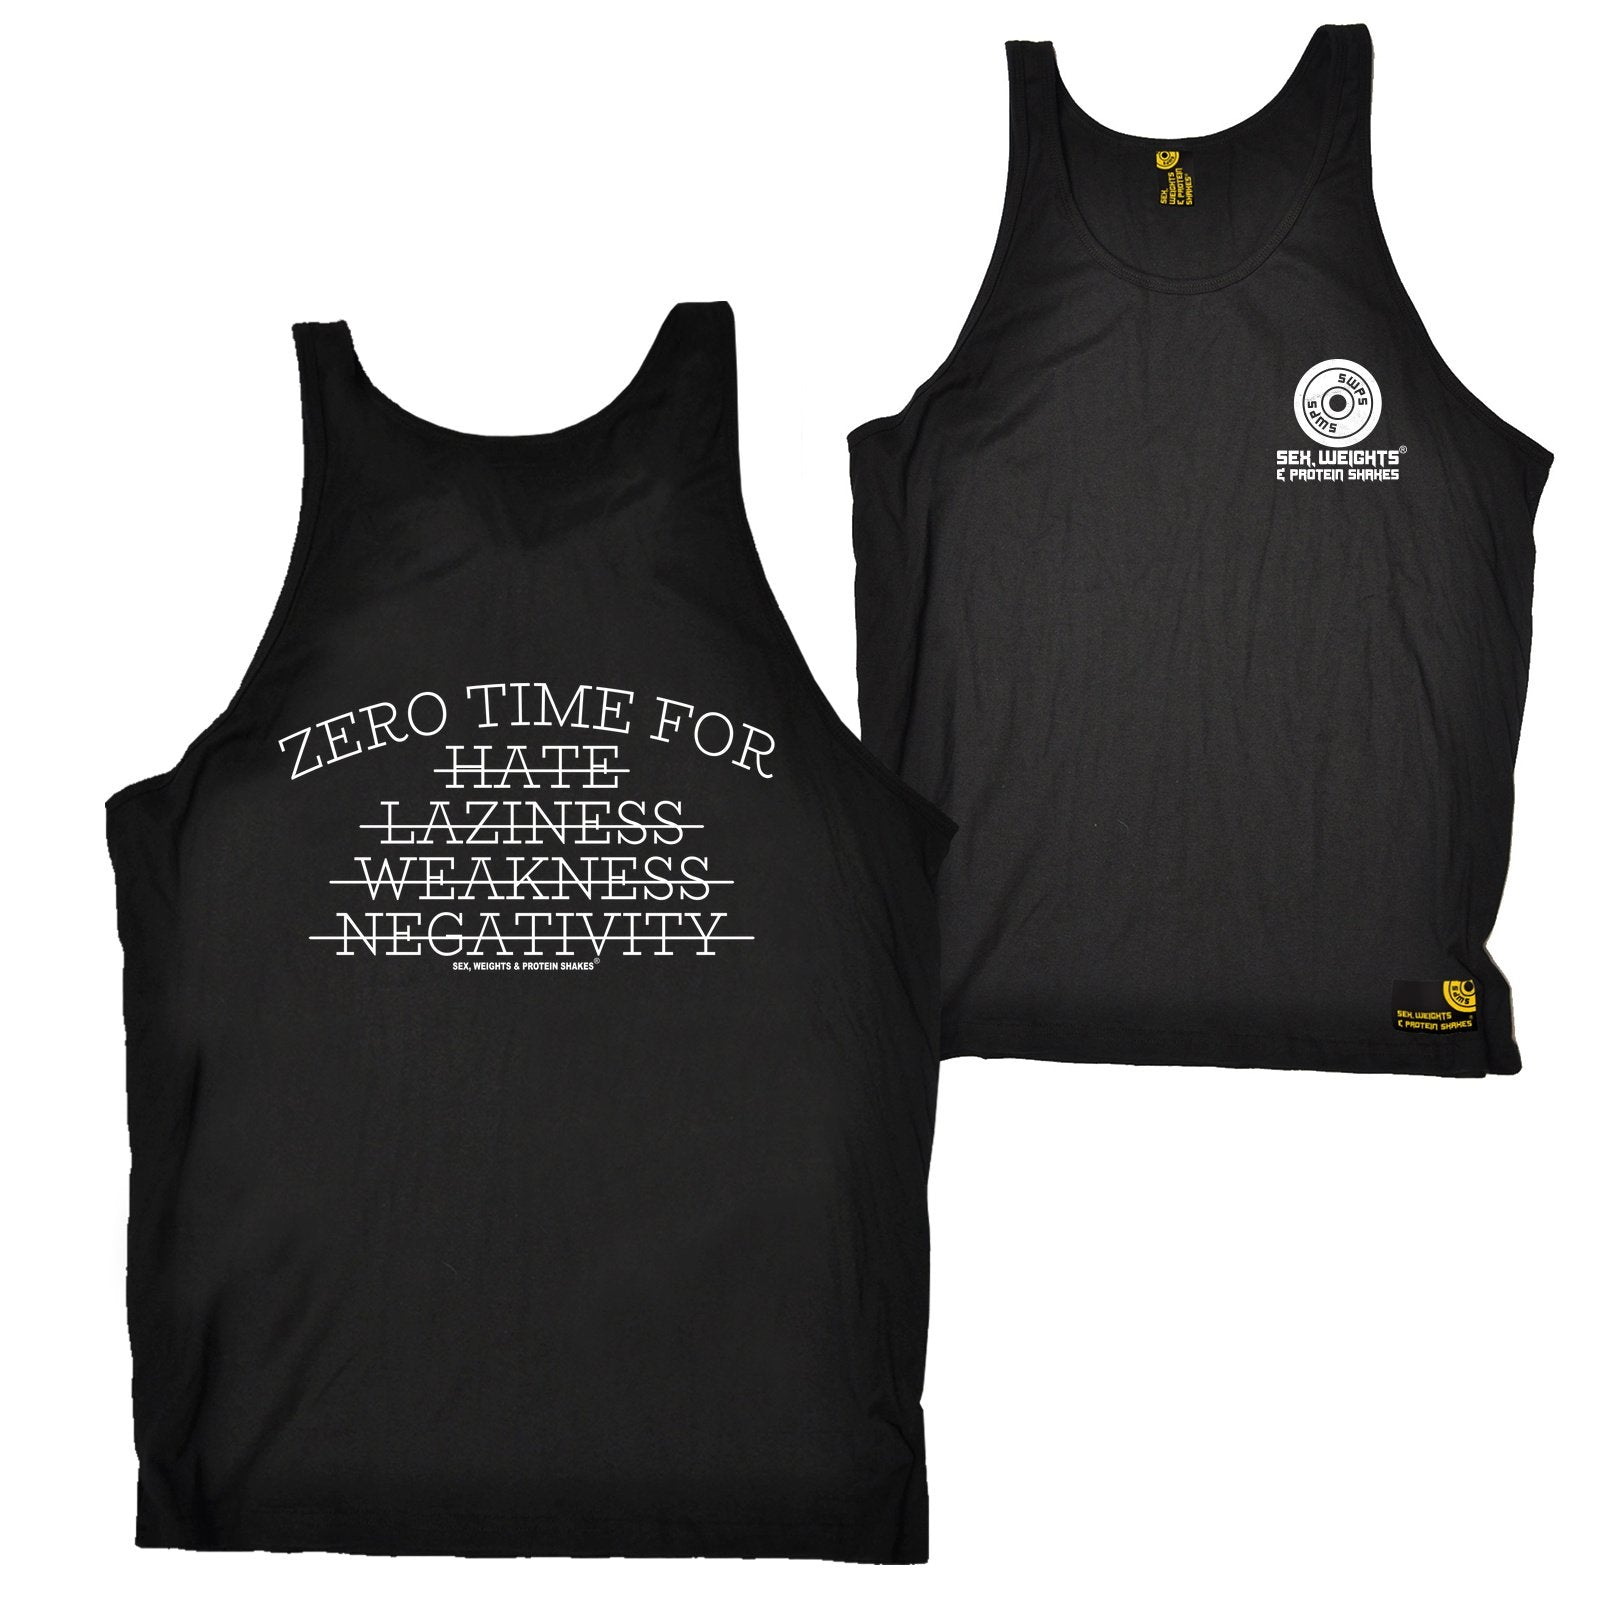 FB Sex Weights and Protein Shakes Gym Bodybuilding Vest - Zero Time For - Bella Singlet Top